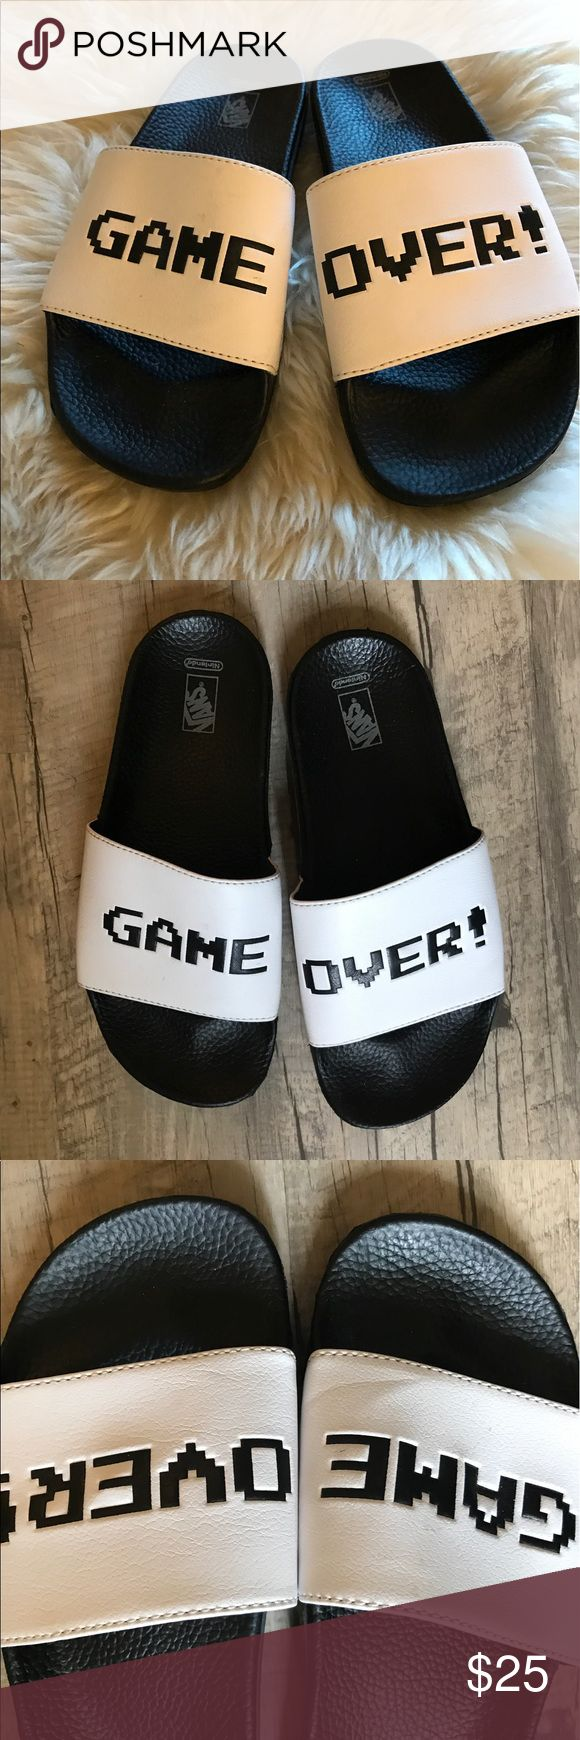 •GAME OVER - Vans/ NINTENDO Collection Slip Ons• •Rubber sole and synthetic leather upper• in almost new condition, worn once or twice but they were just too wide for my feet• tagged as a size 7- may fit a wide foot that is 7.5-8 better• TAGS- #slipon #athletic #goth #unique #Nintendo # Vans Shoes Sandals